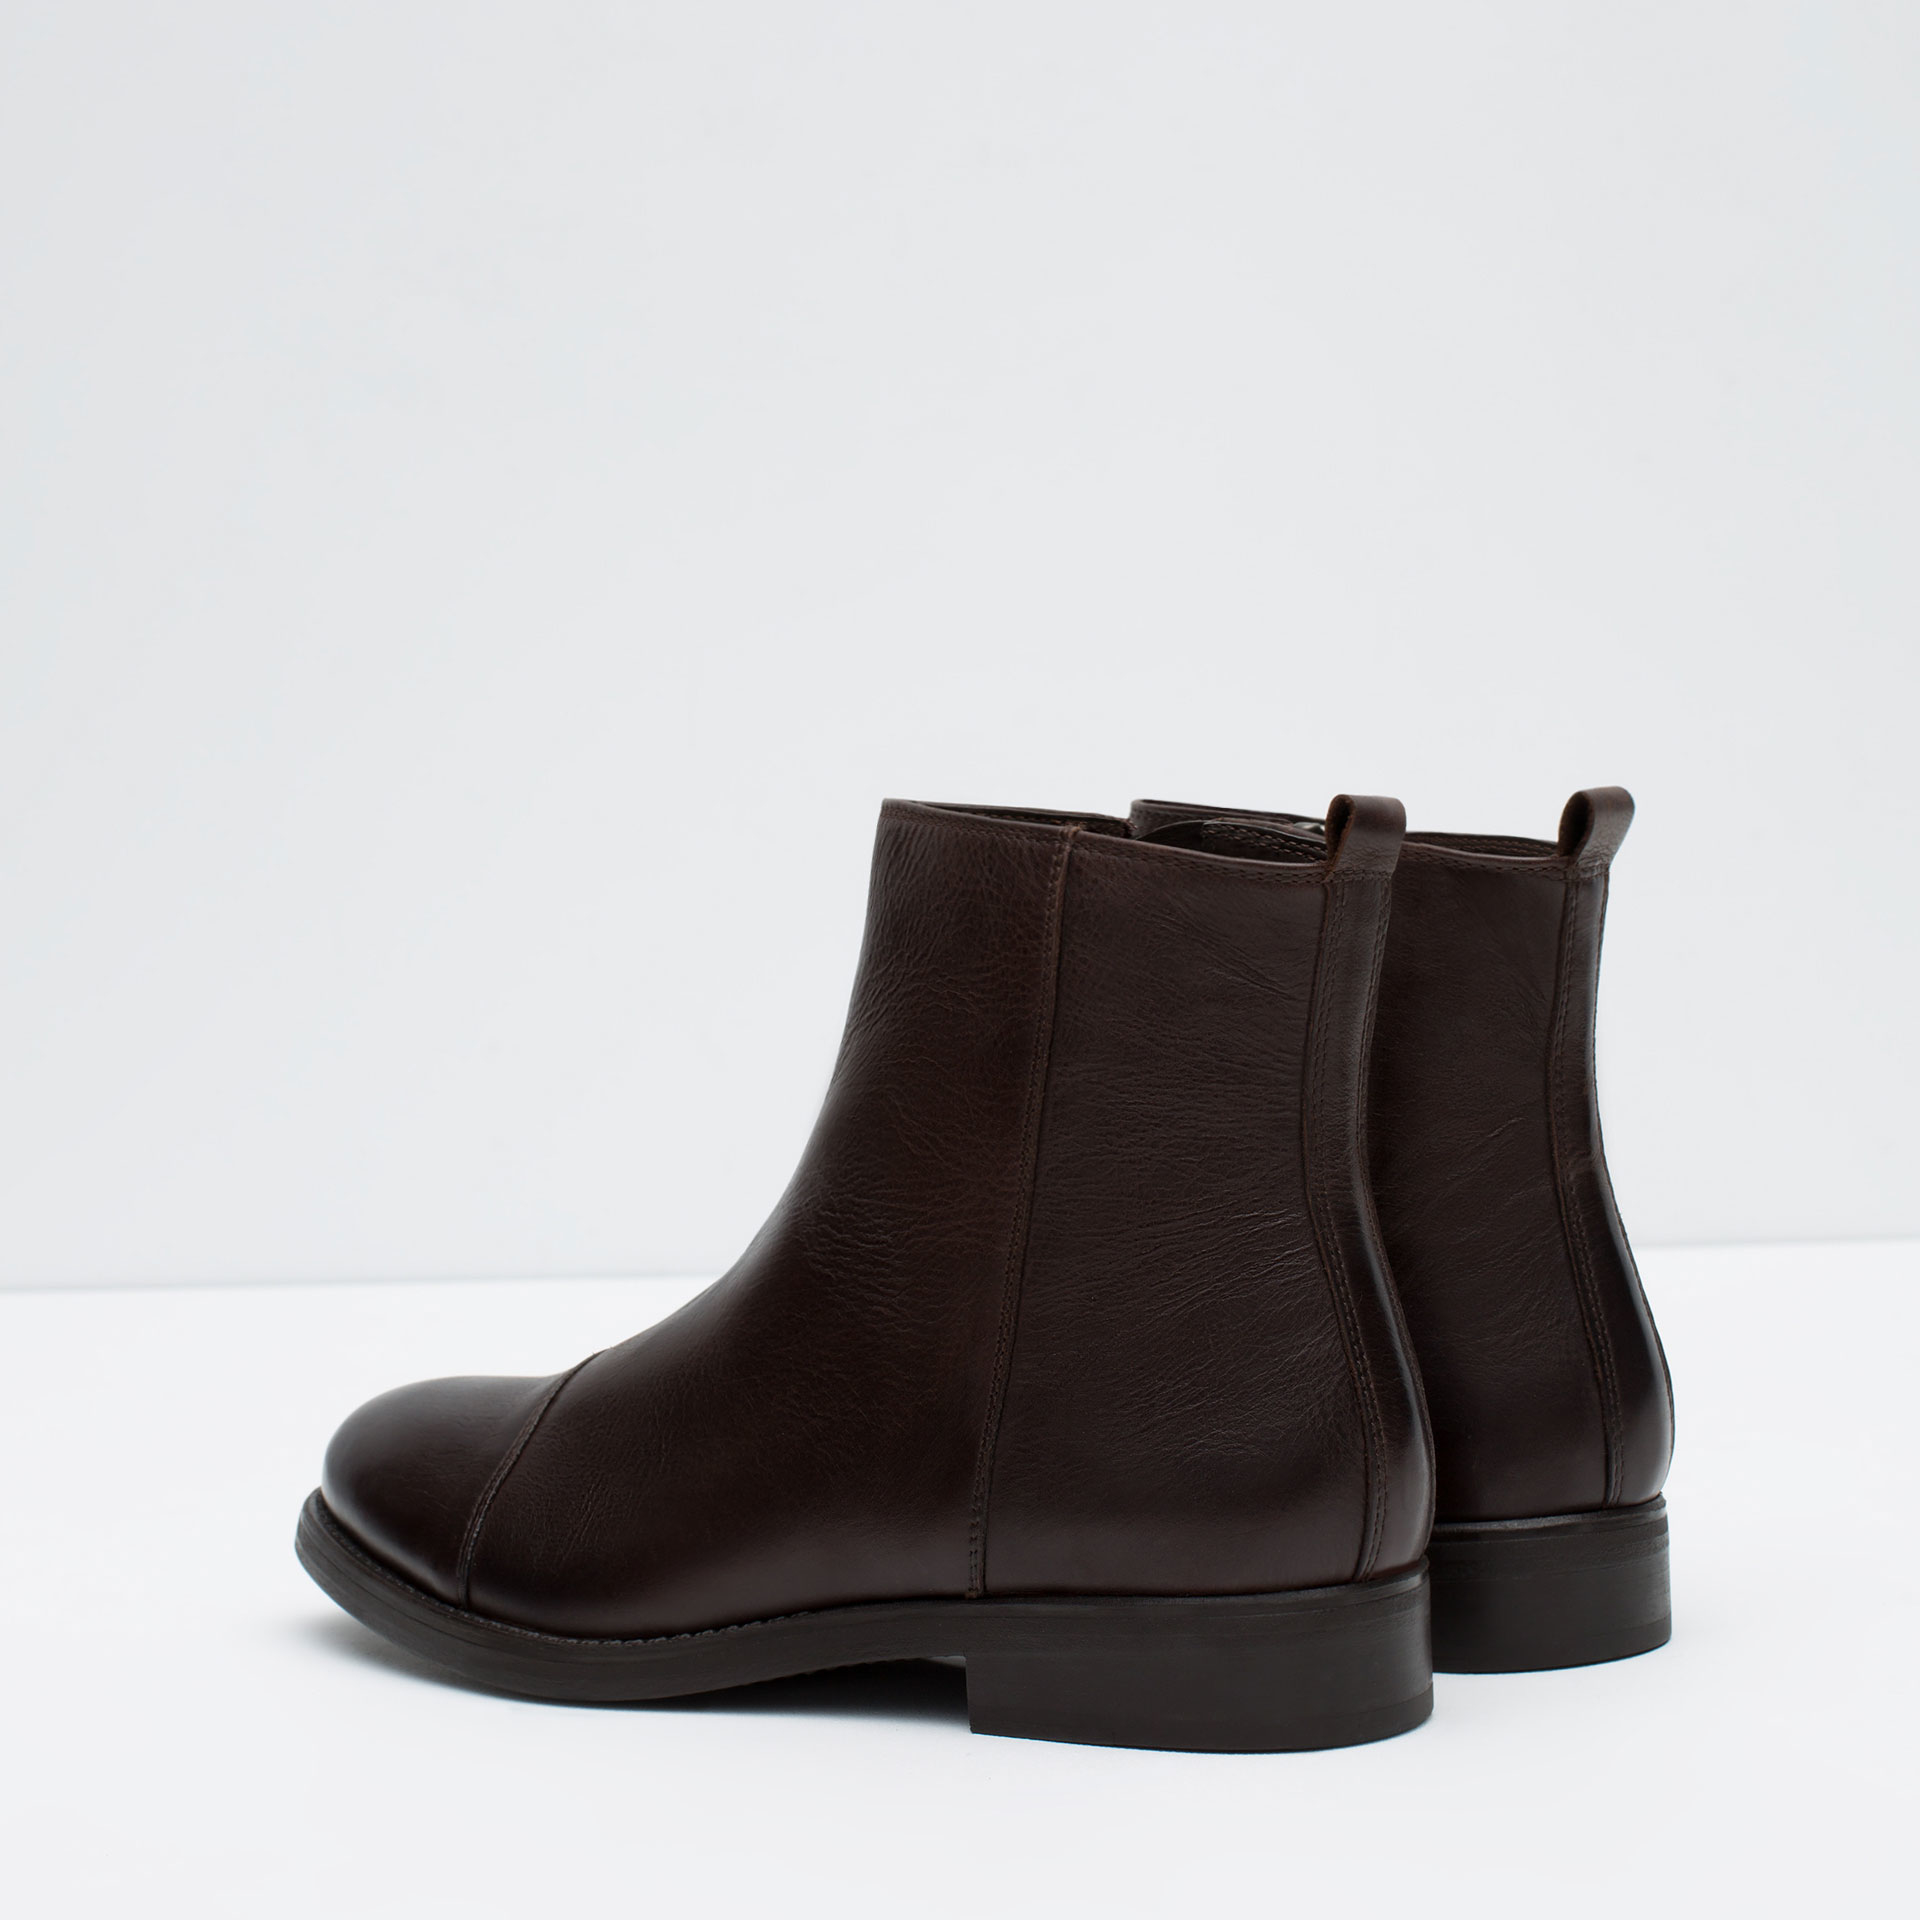 zara zipped leather boots in brown for lyst